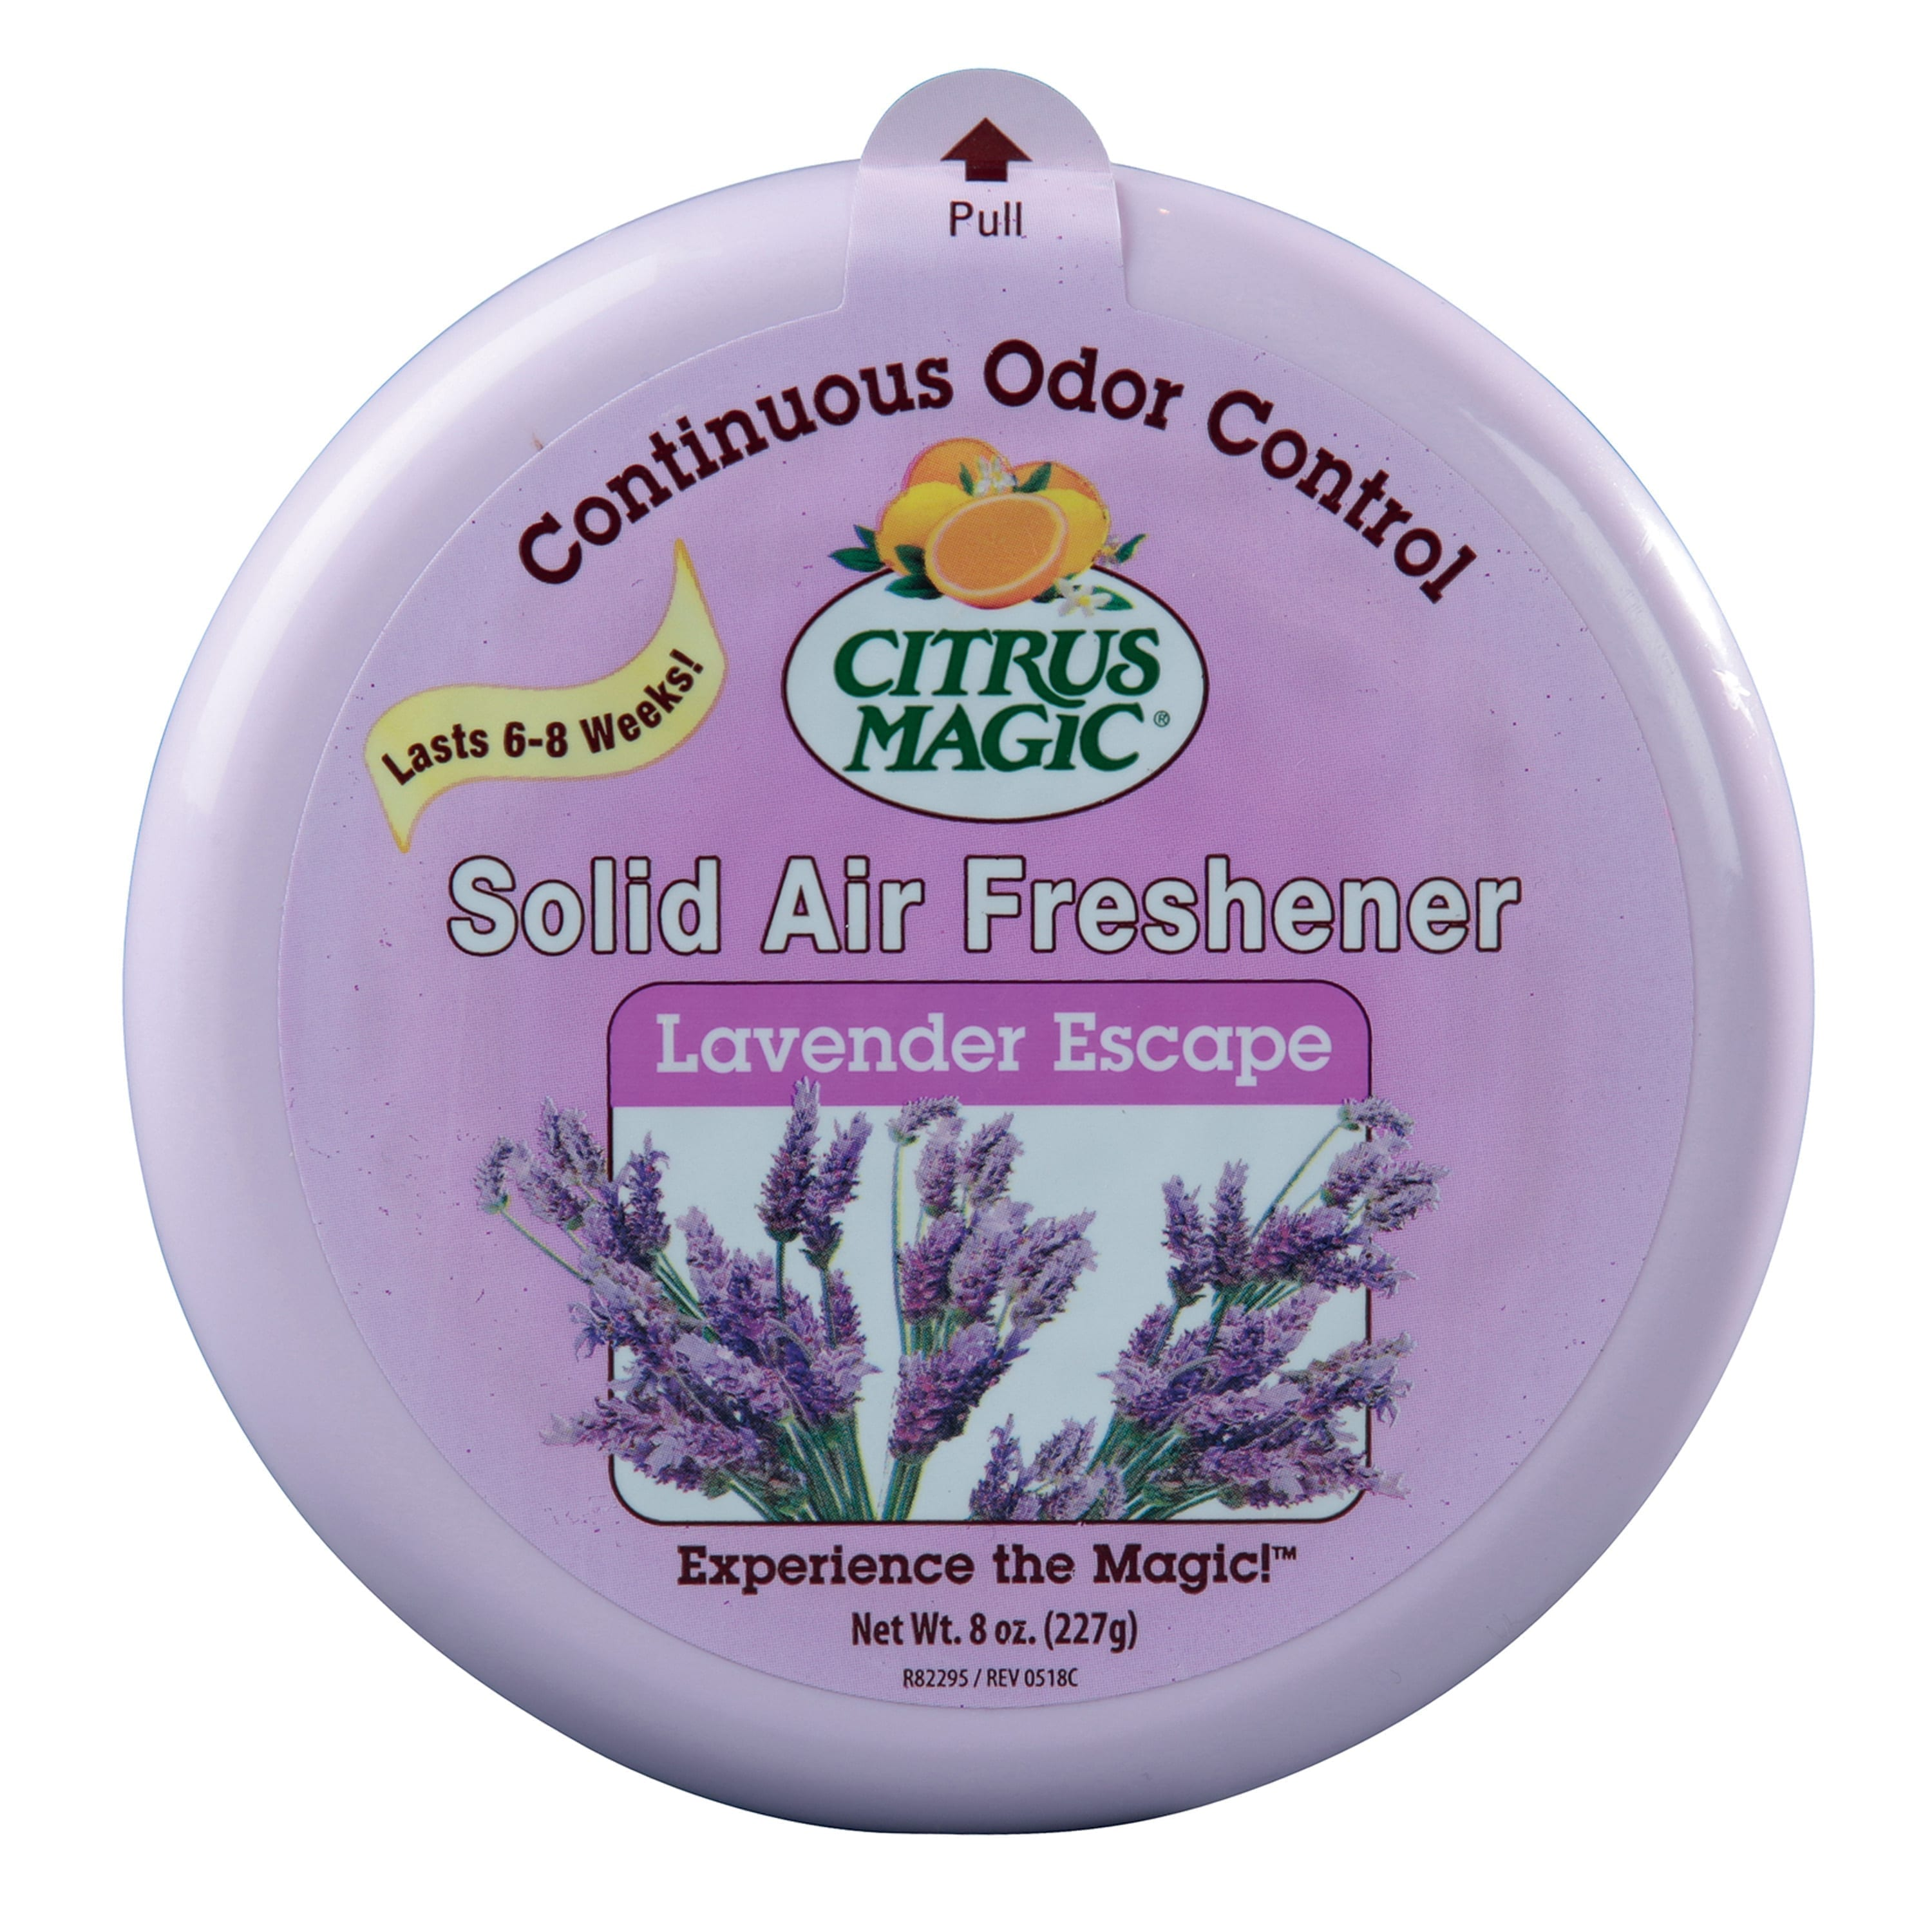 Citrus Magic Odor Absorbing Solid Air Freshener, Lavender Escape